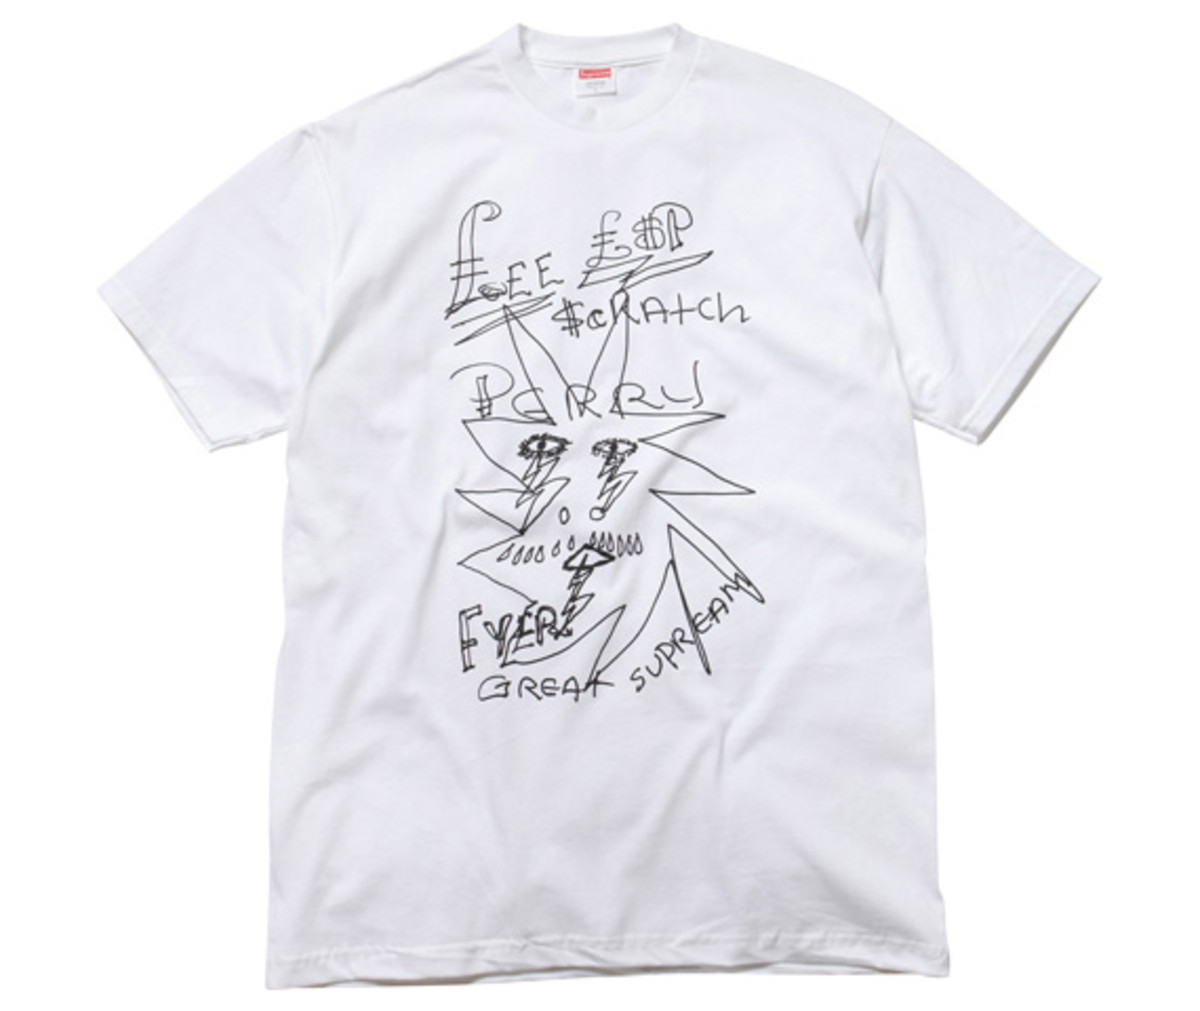 supreme-nyc-lee-scratch-perry-fryer-tee-01